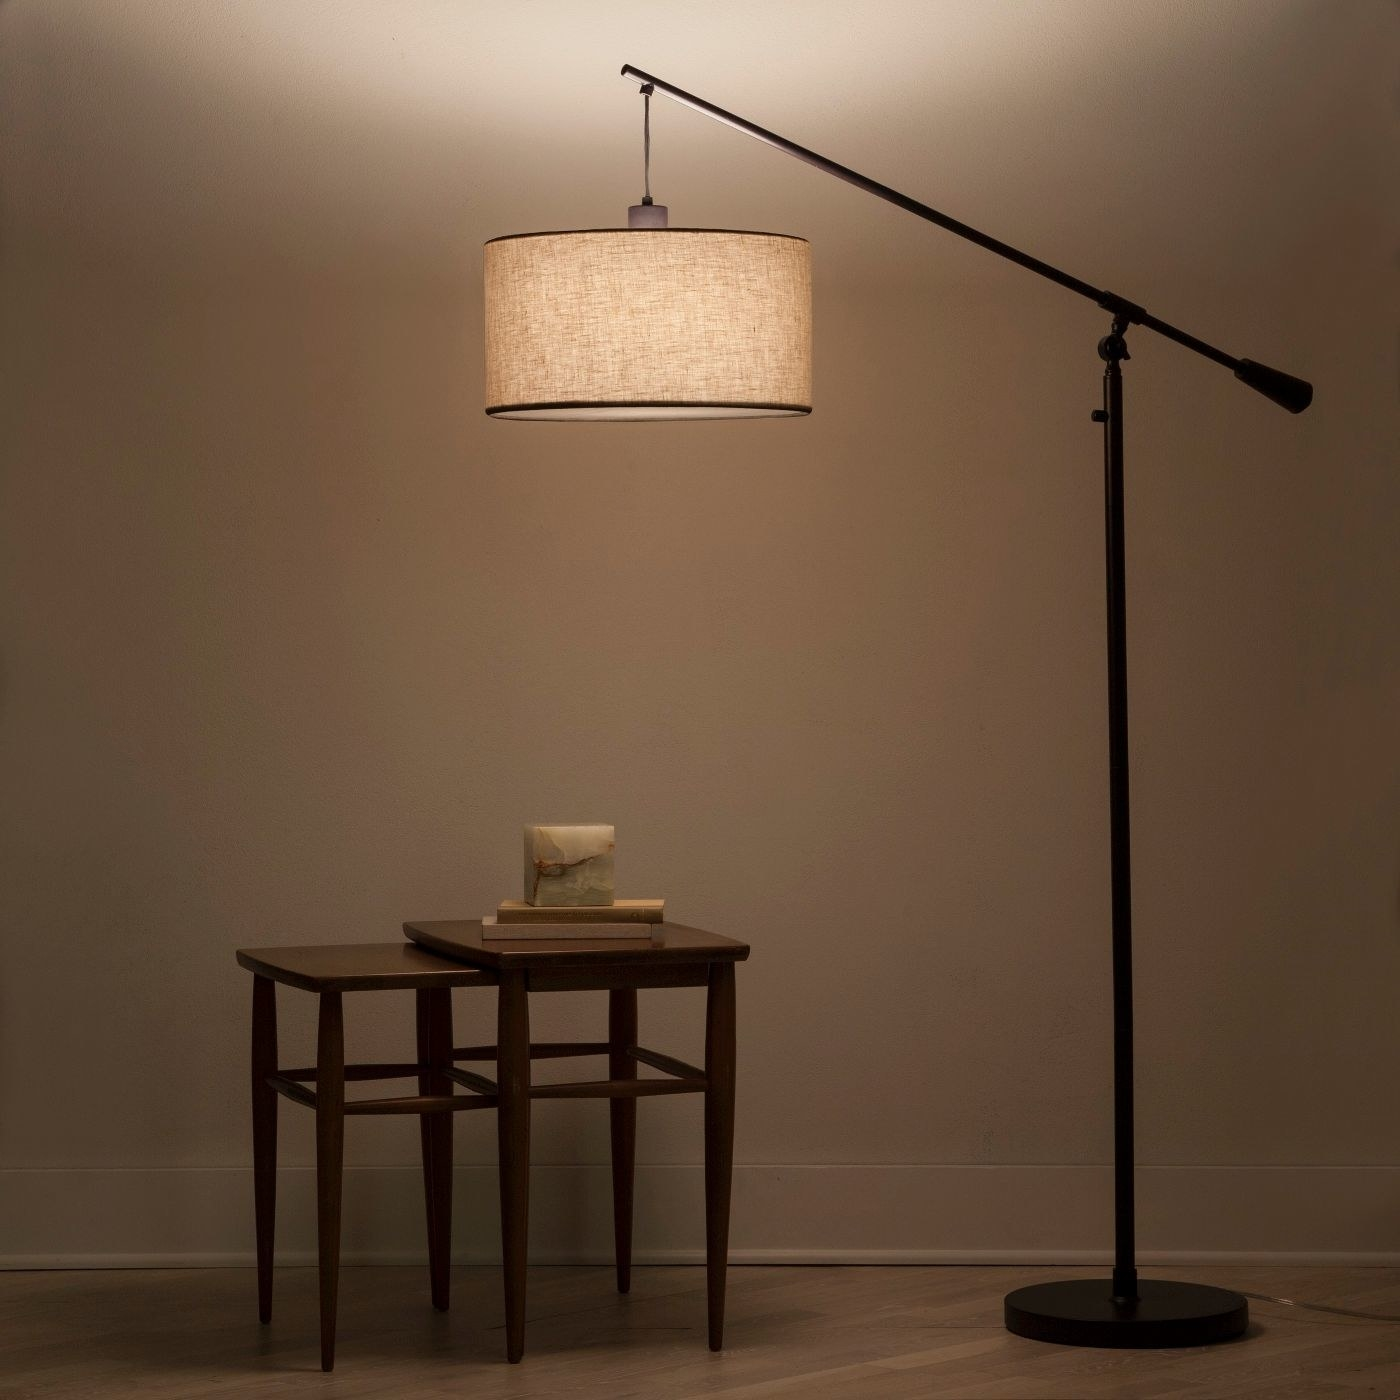 A room with a brown pendant style lamp